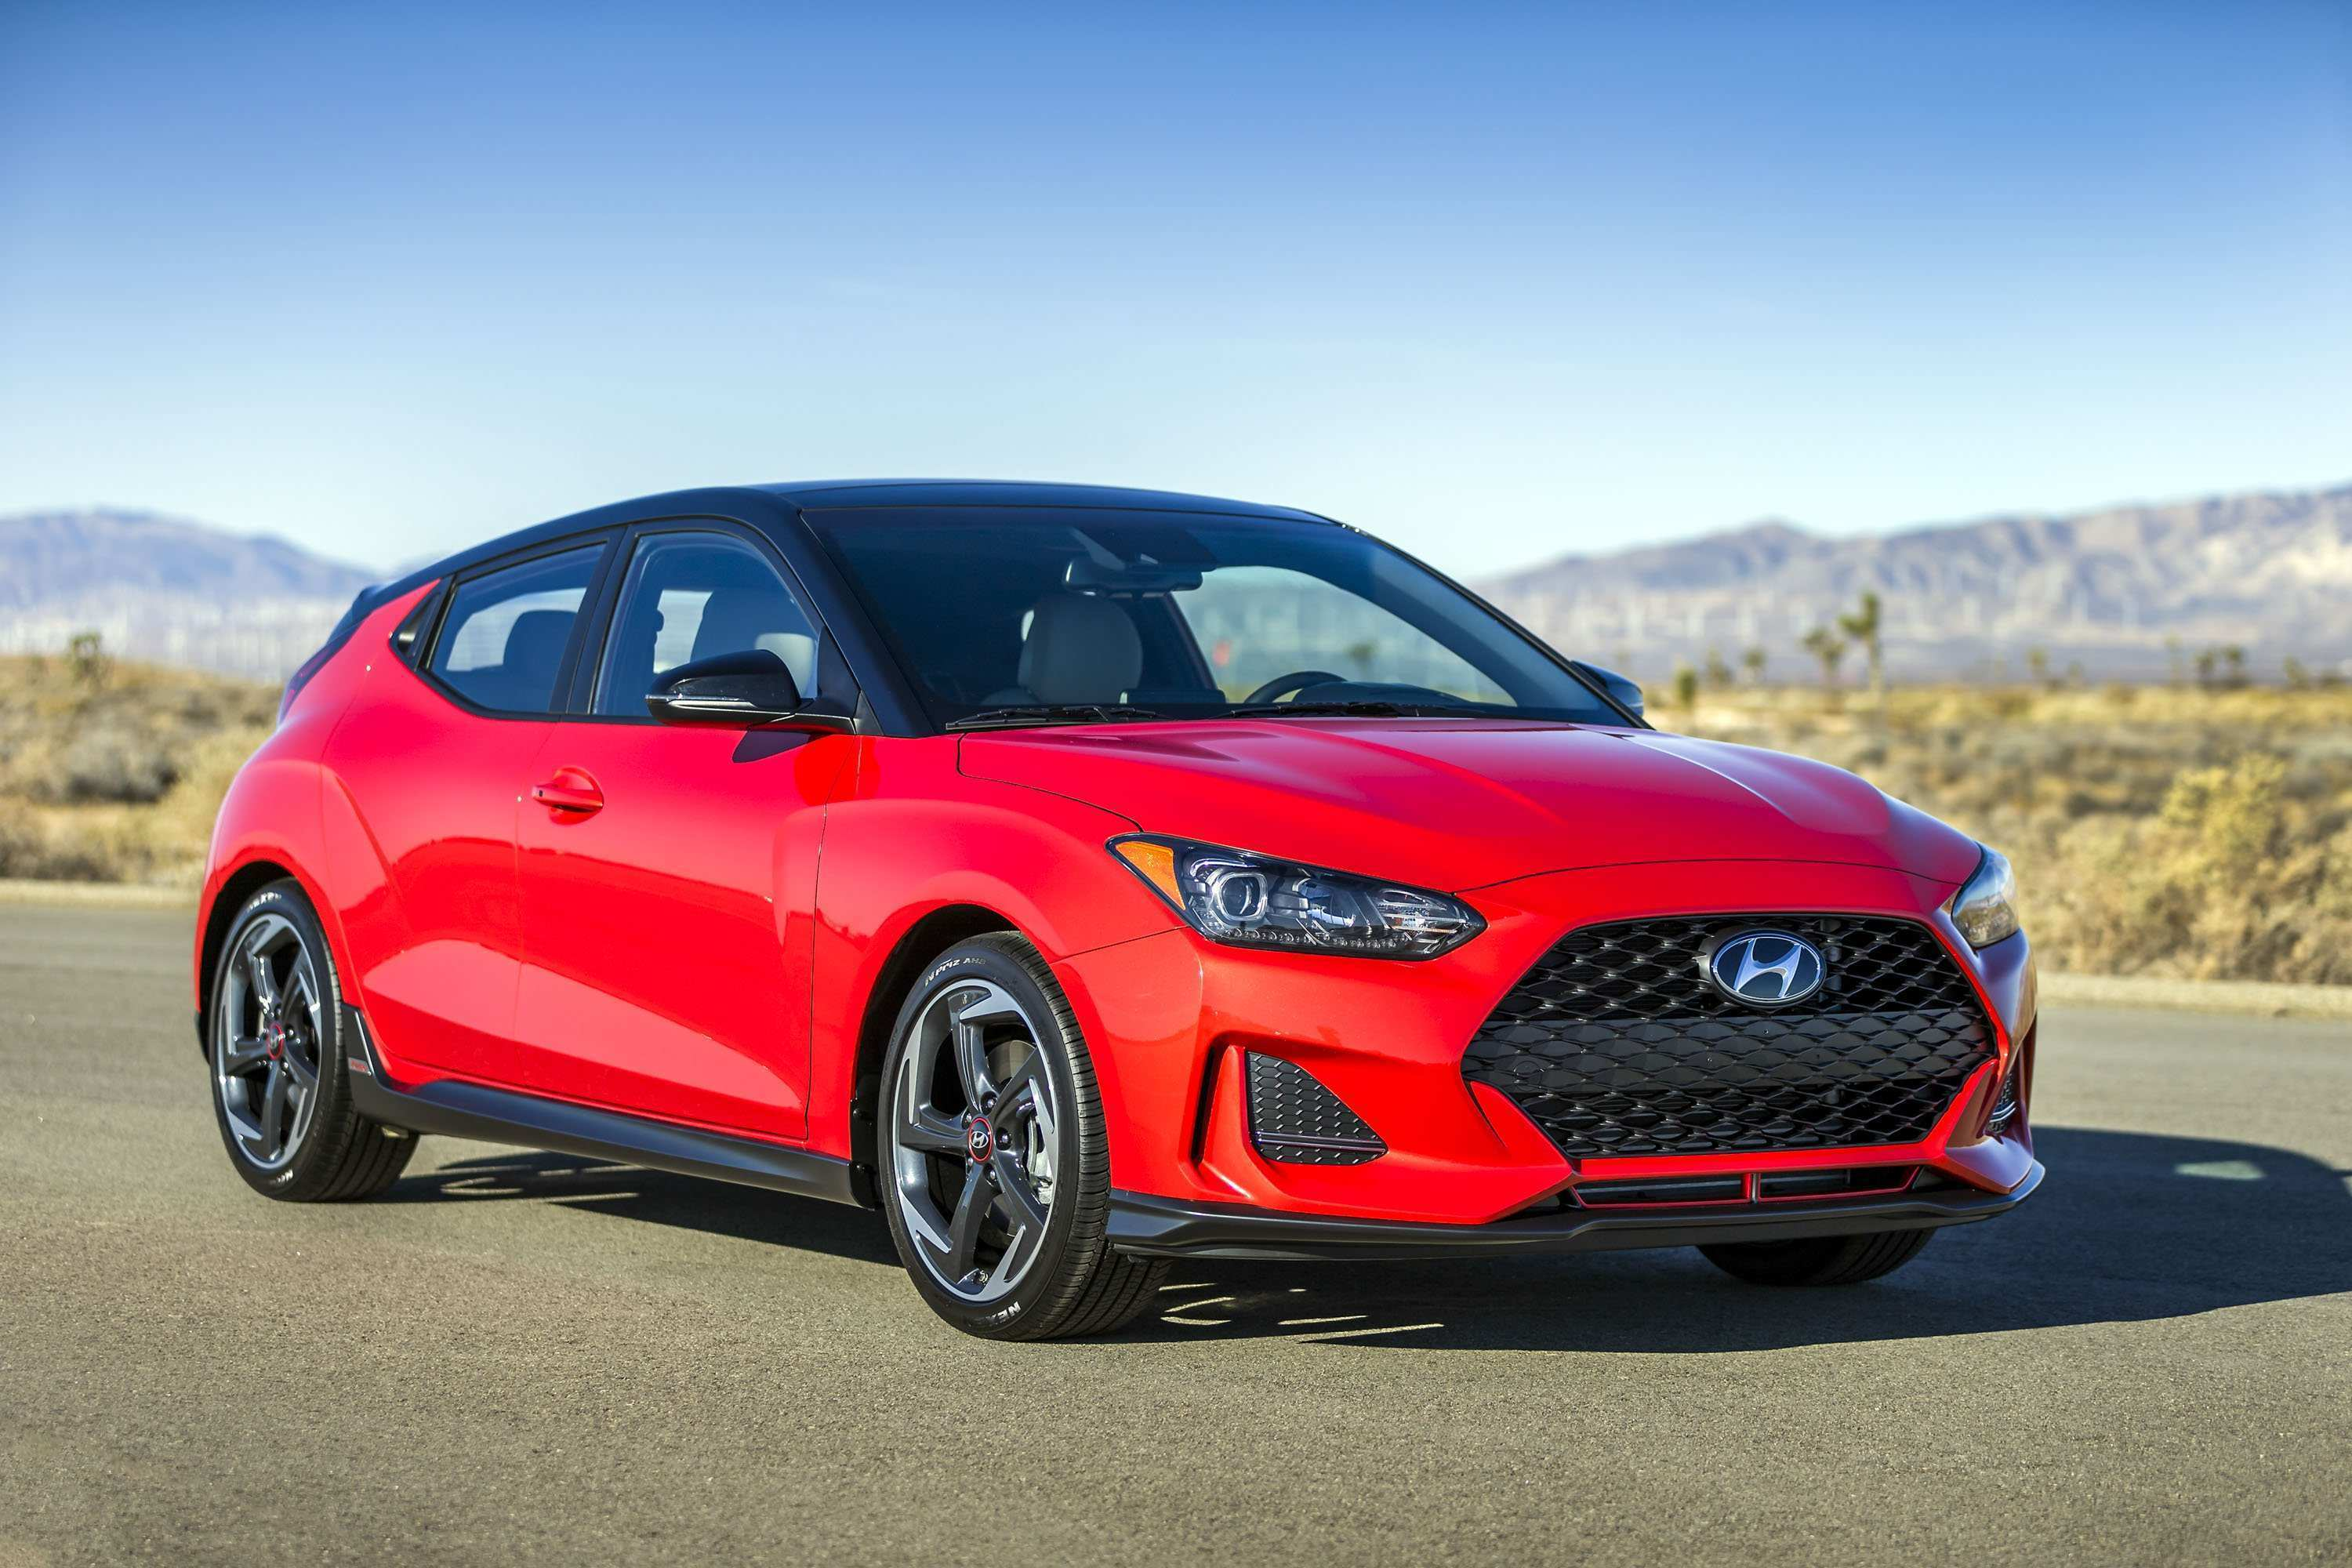 92 The Best Hyundai Veloster 2020 Redesign And Concept